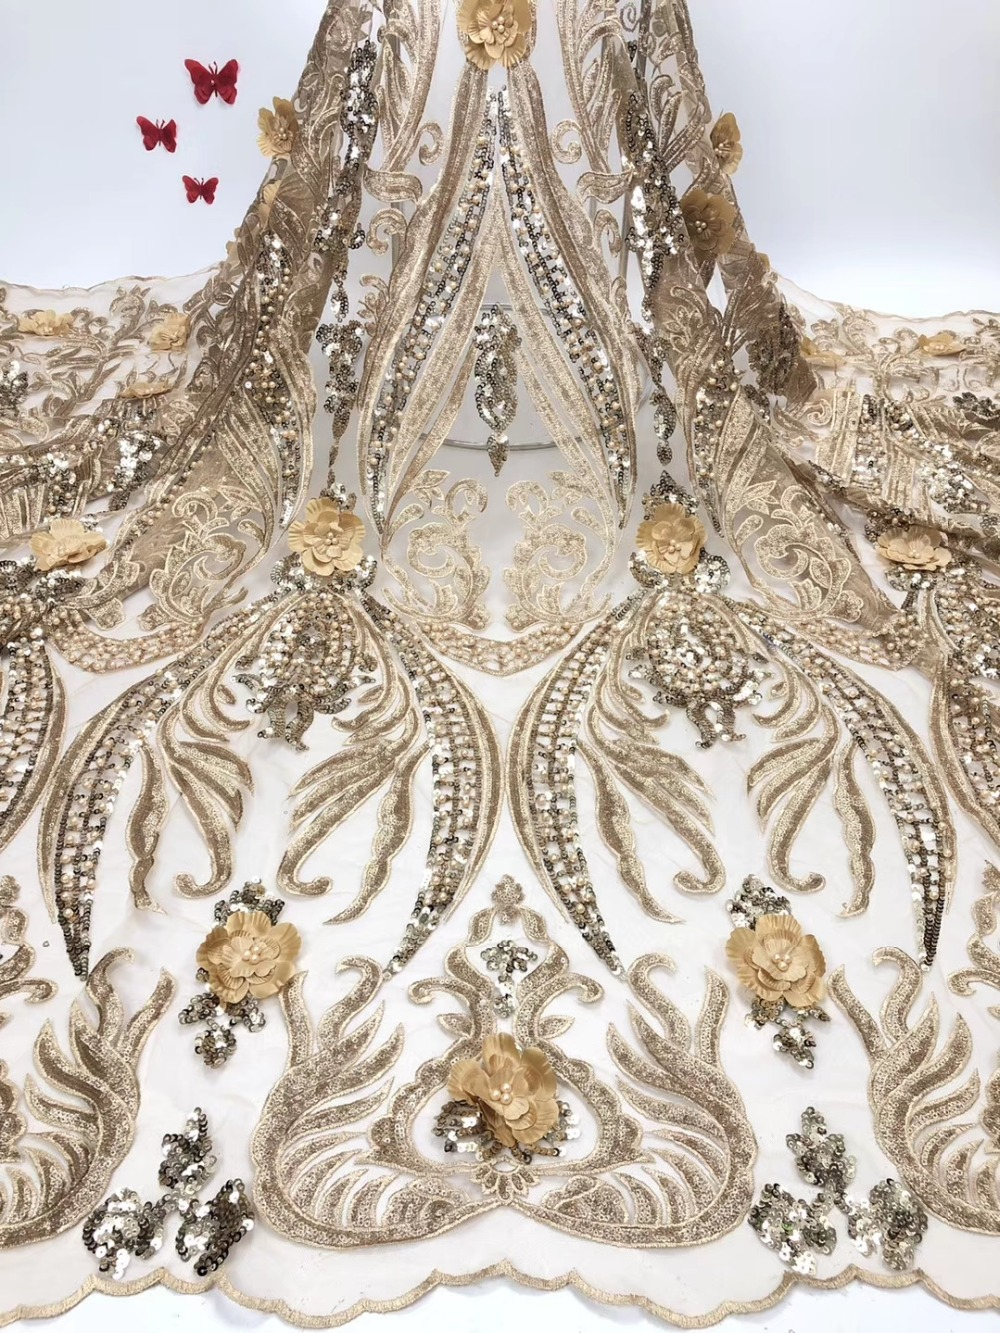 African Lace Fabric 2019 french  Lace Fabrics High Quality net Lace Embroidery French Tulle Lace Fabric For Wedding   JIAAP093African Lace Fabric 2019 french  Lace Fabrics High Quality net Lace Embroidery French Tulle Lace Fabric For Wedding   JIAAP093